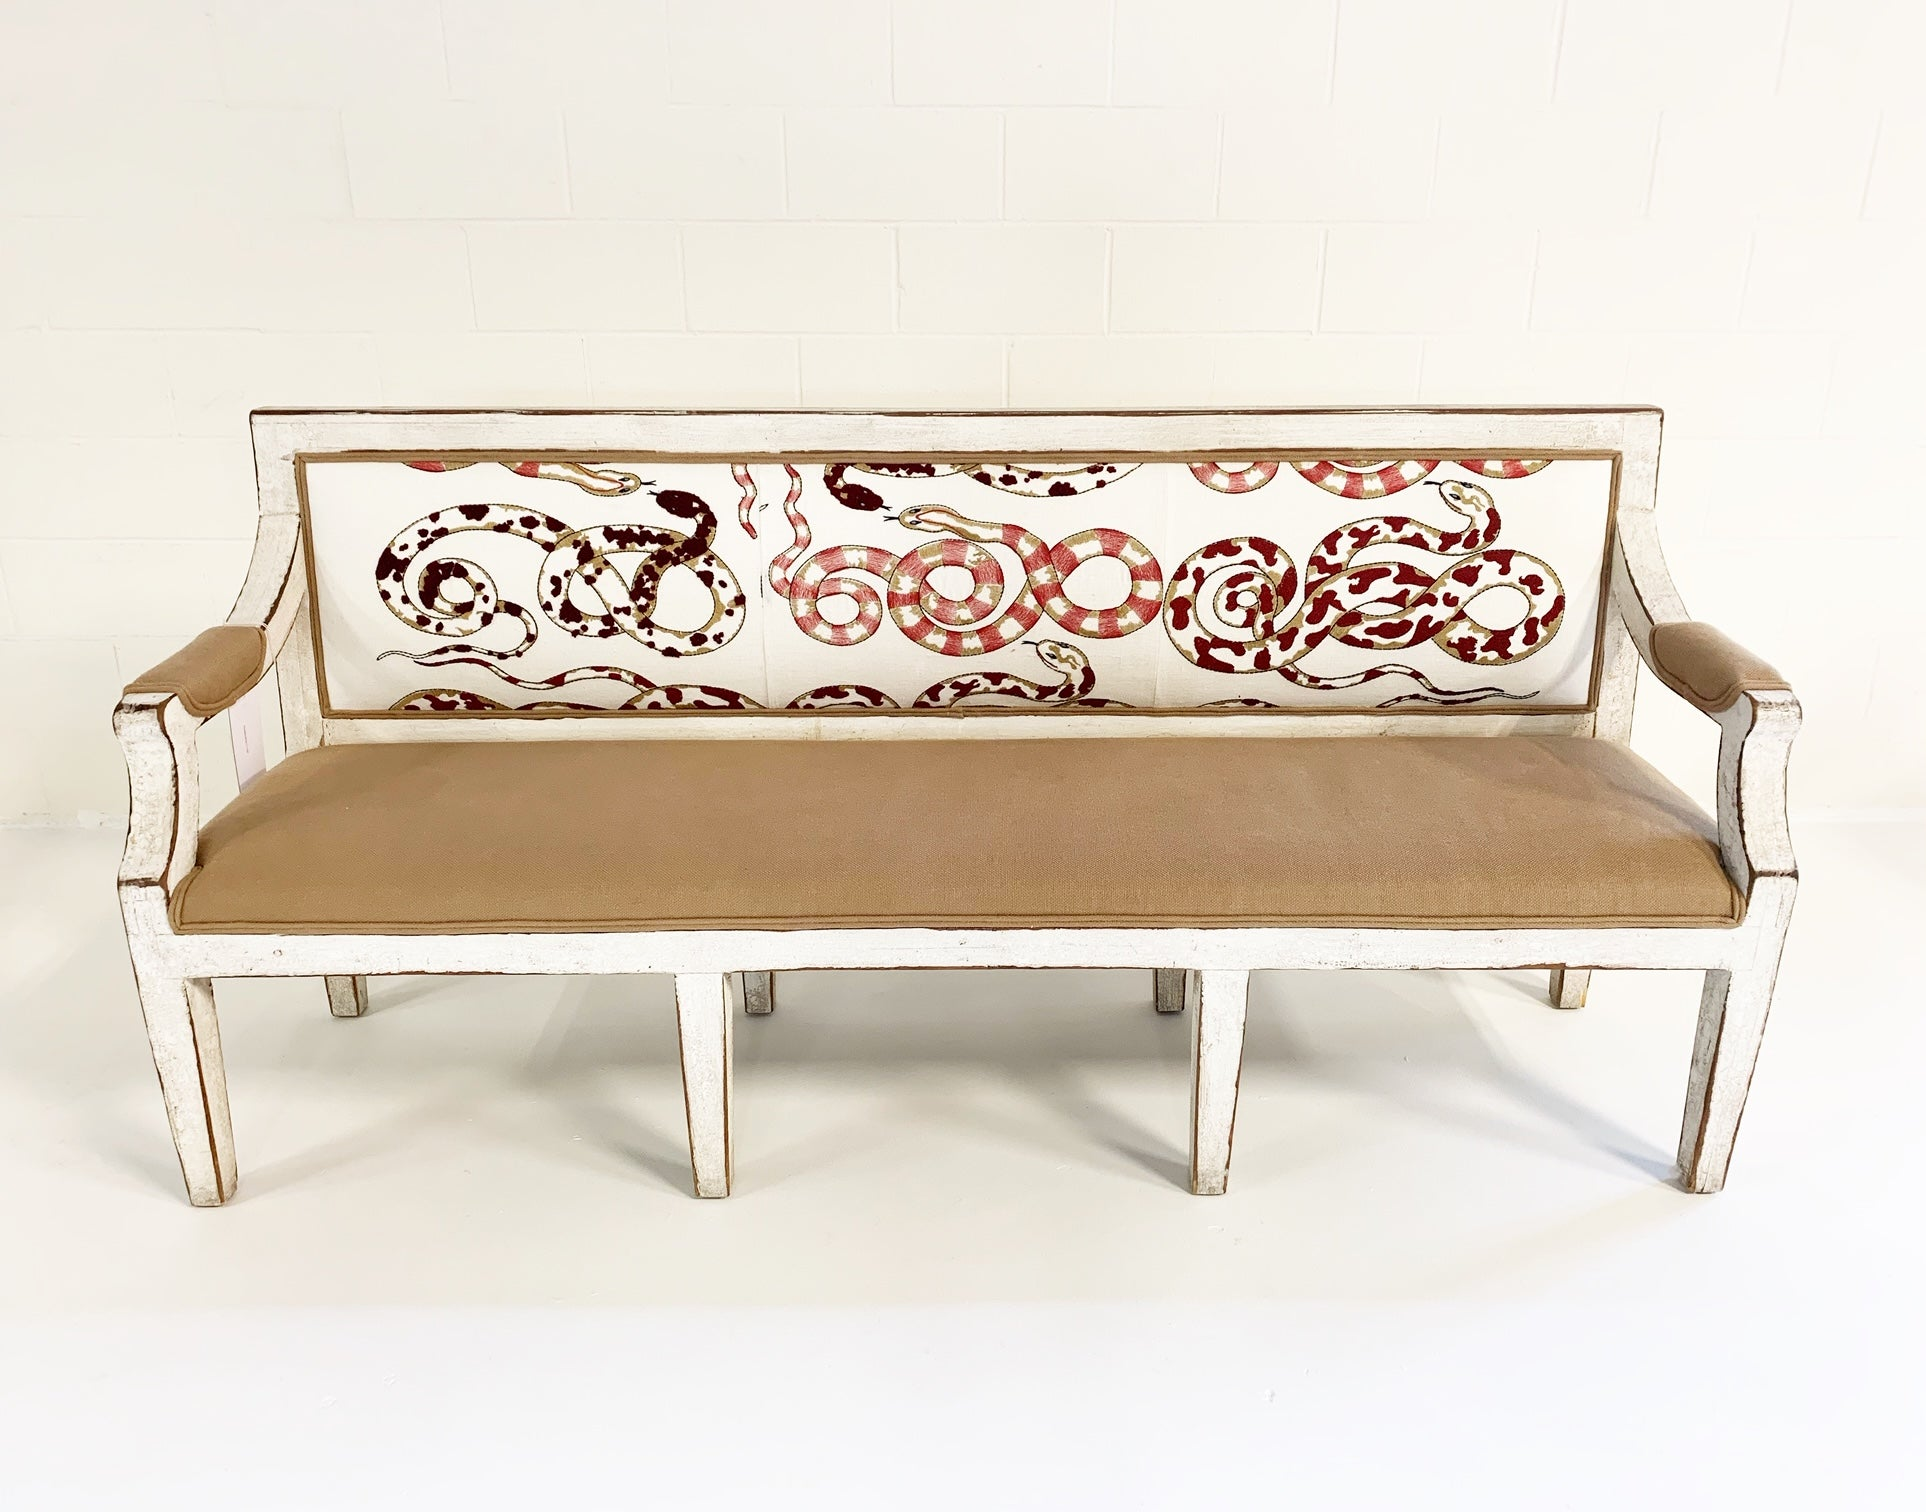 Swedish Neoclassical Style Settee in Pierre Frey and Loro Piana Linens - FORSYTH